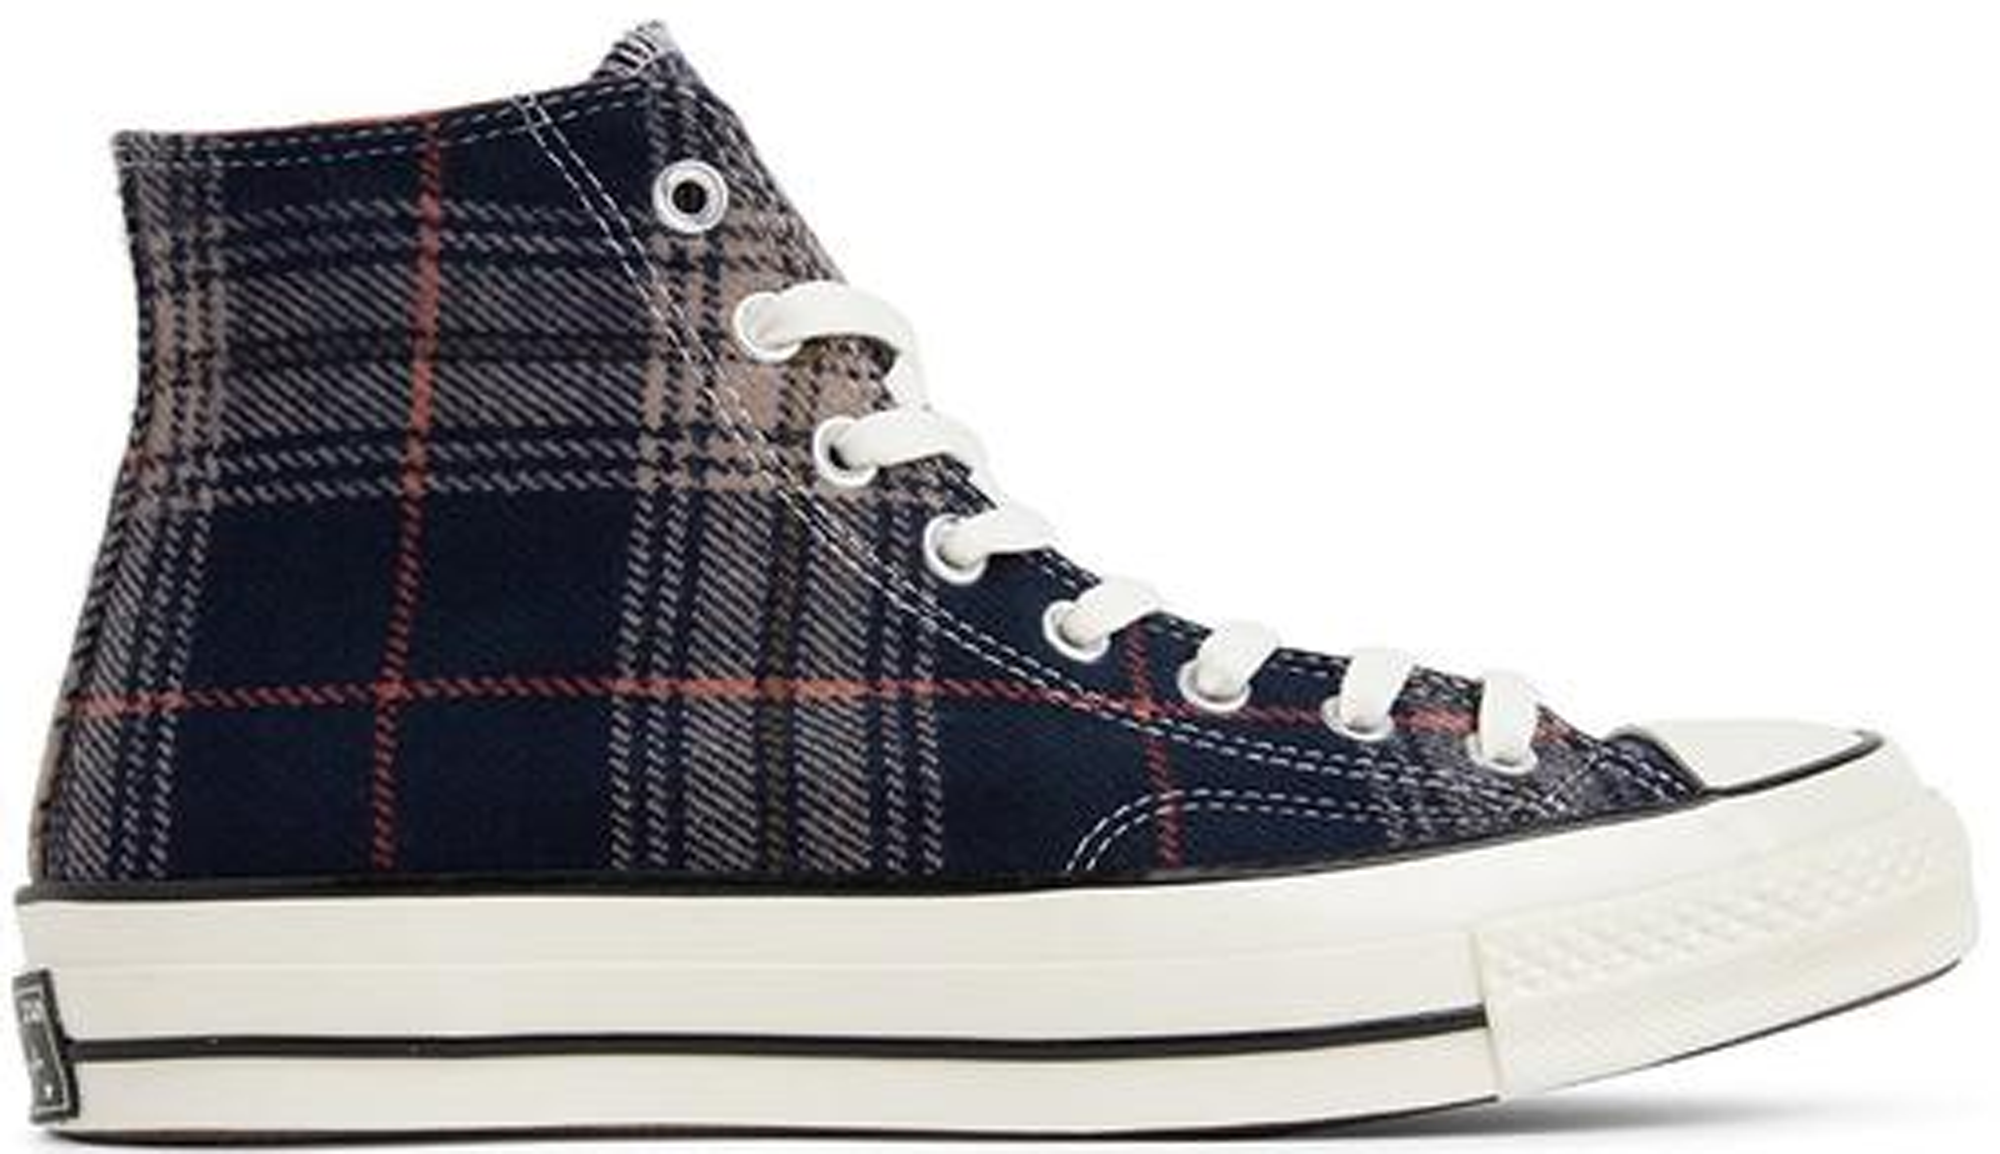 Converse Chuck Taylor All-Star 70s Hi Plaid Pack Navy